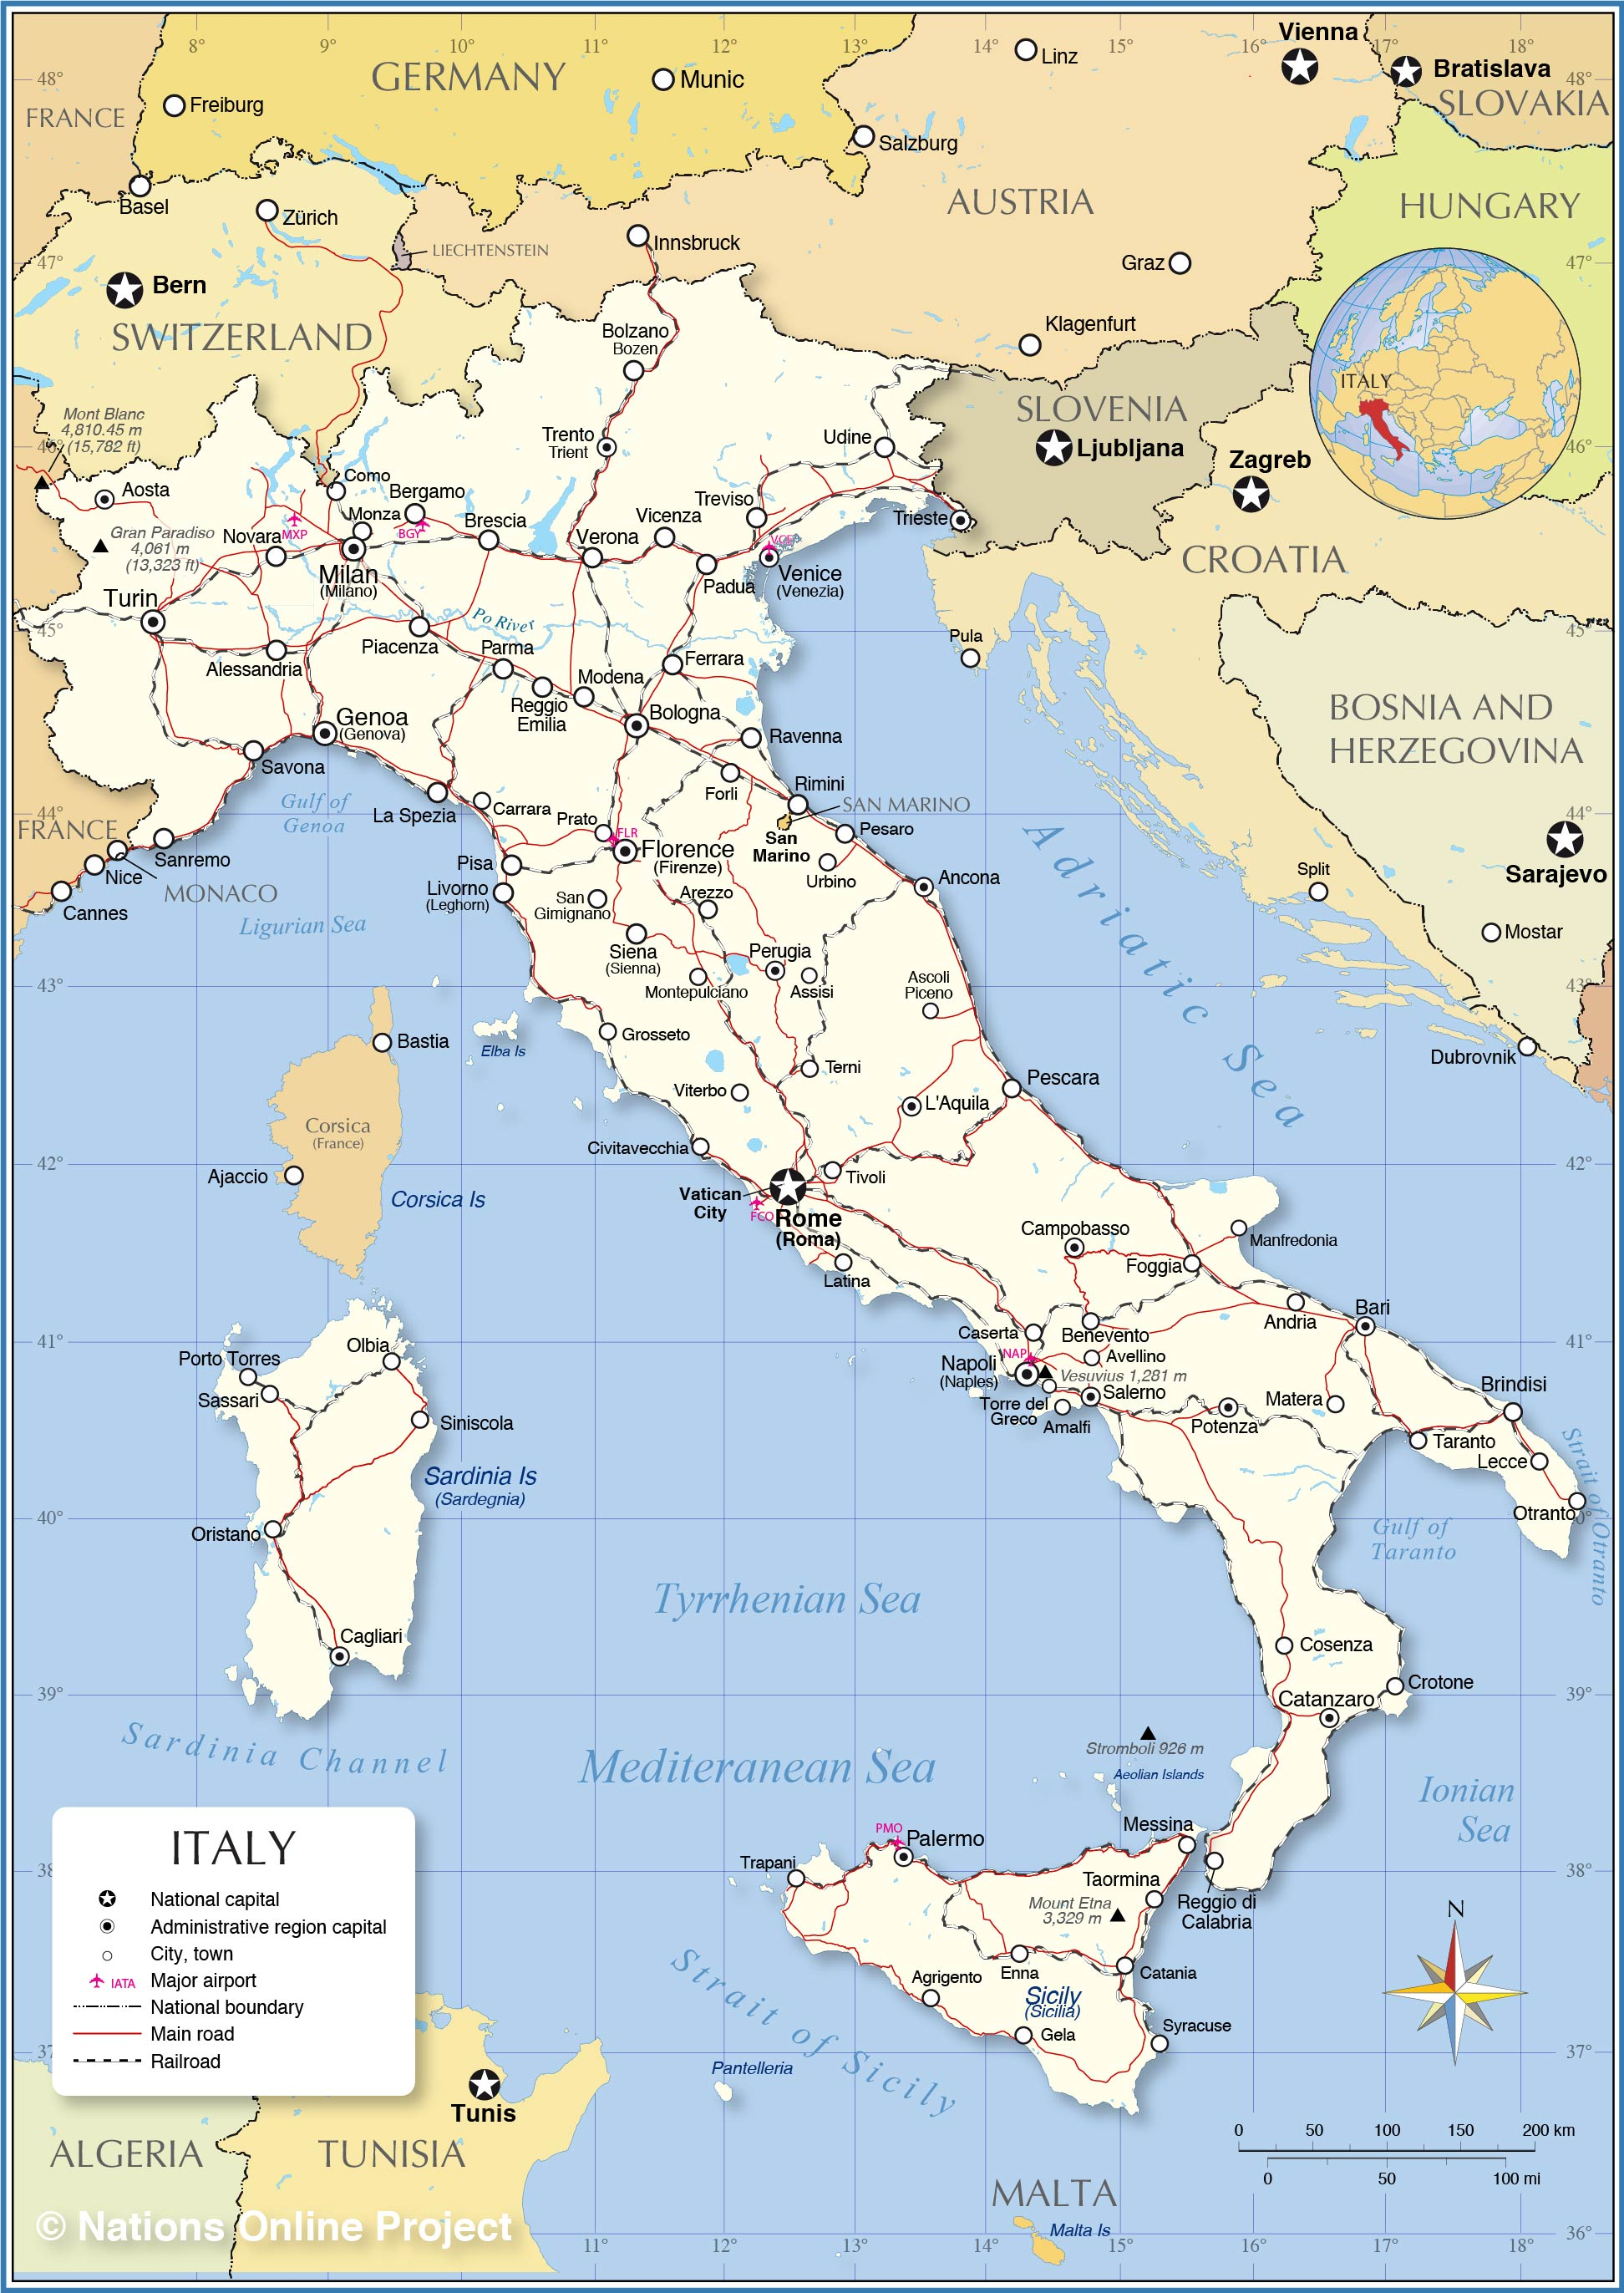 Political Map of Italy  Nations Online Project